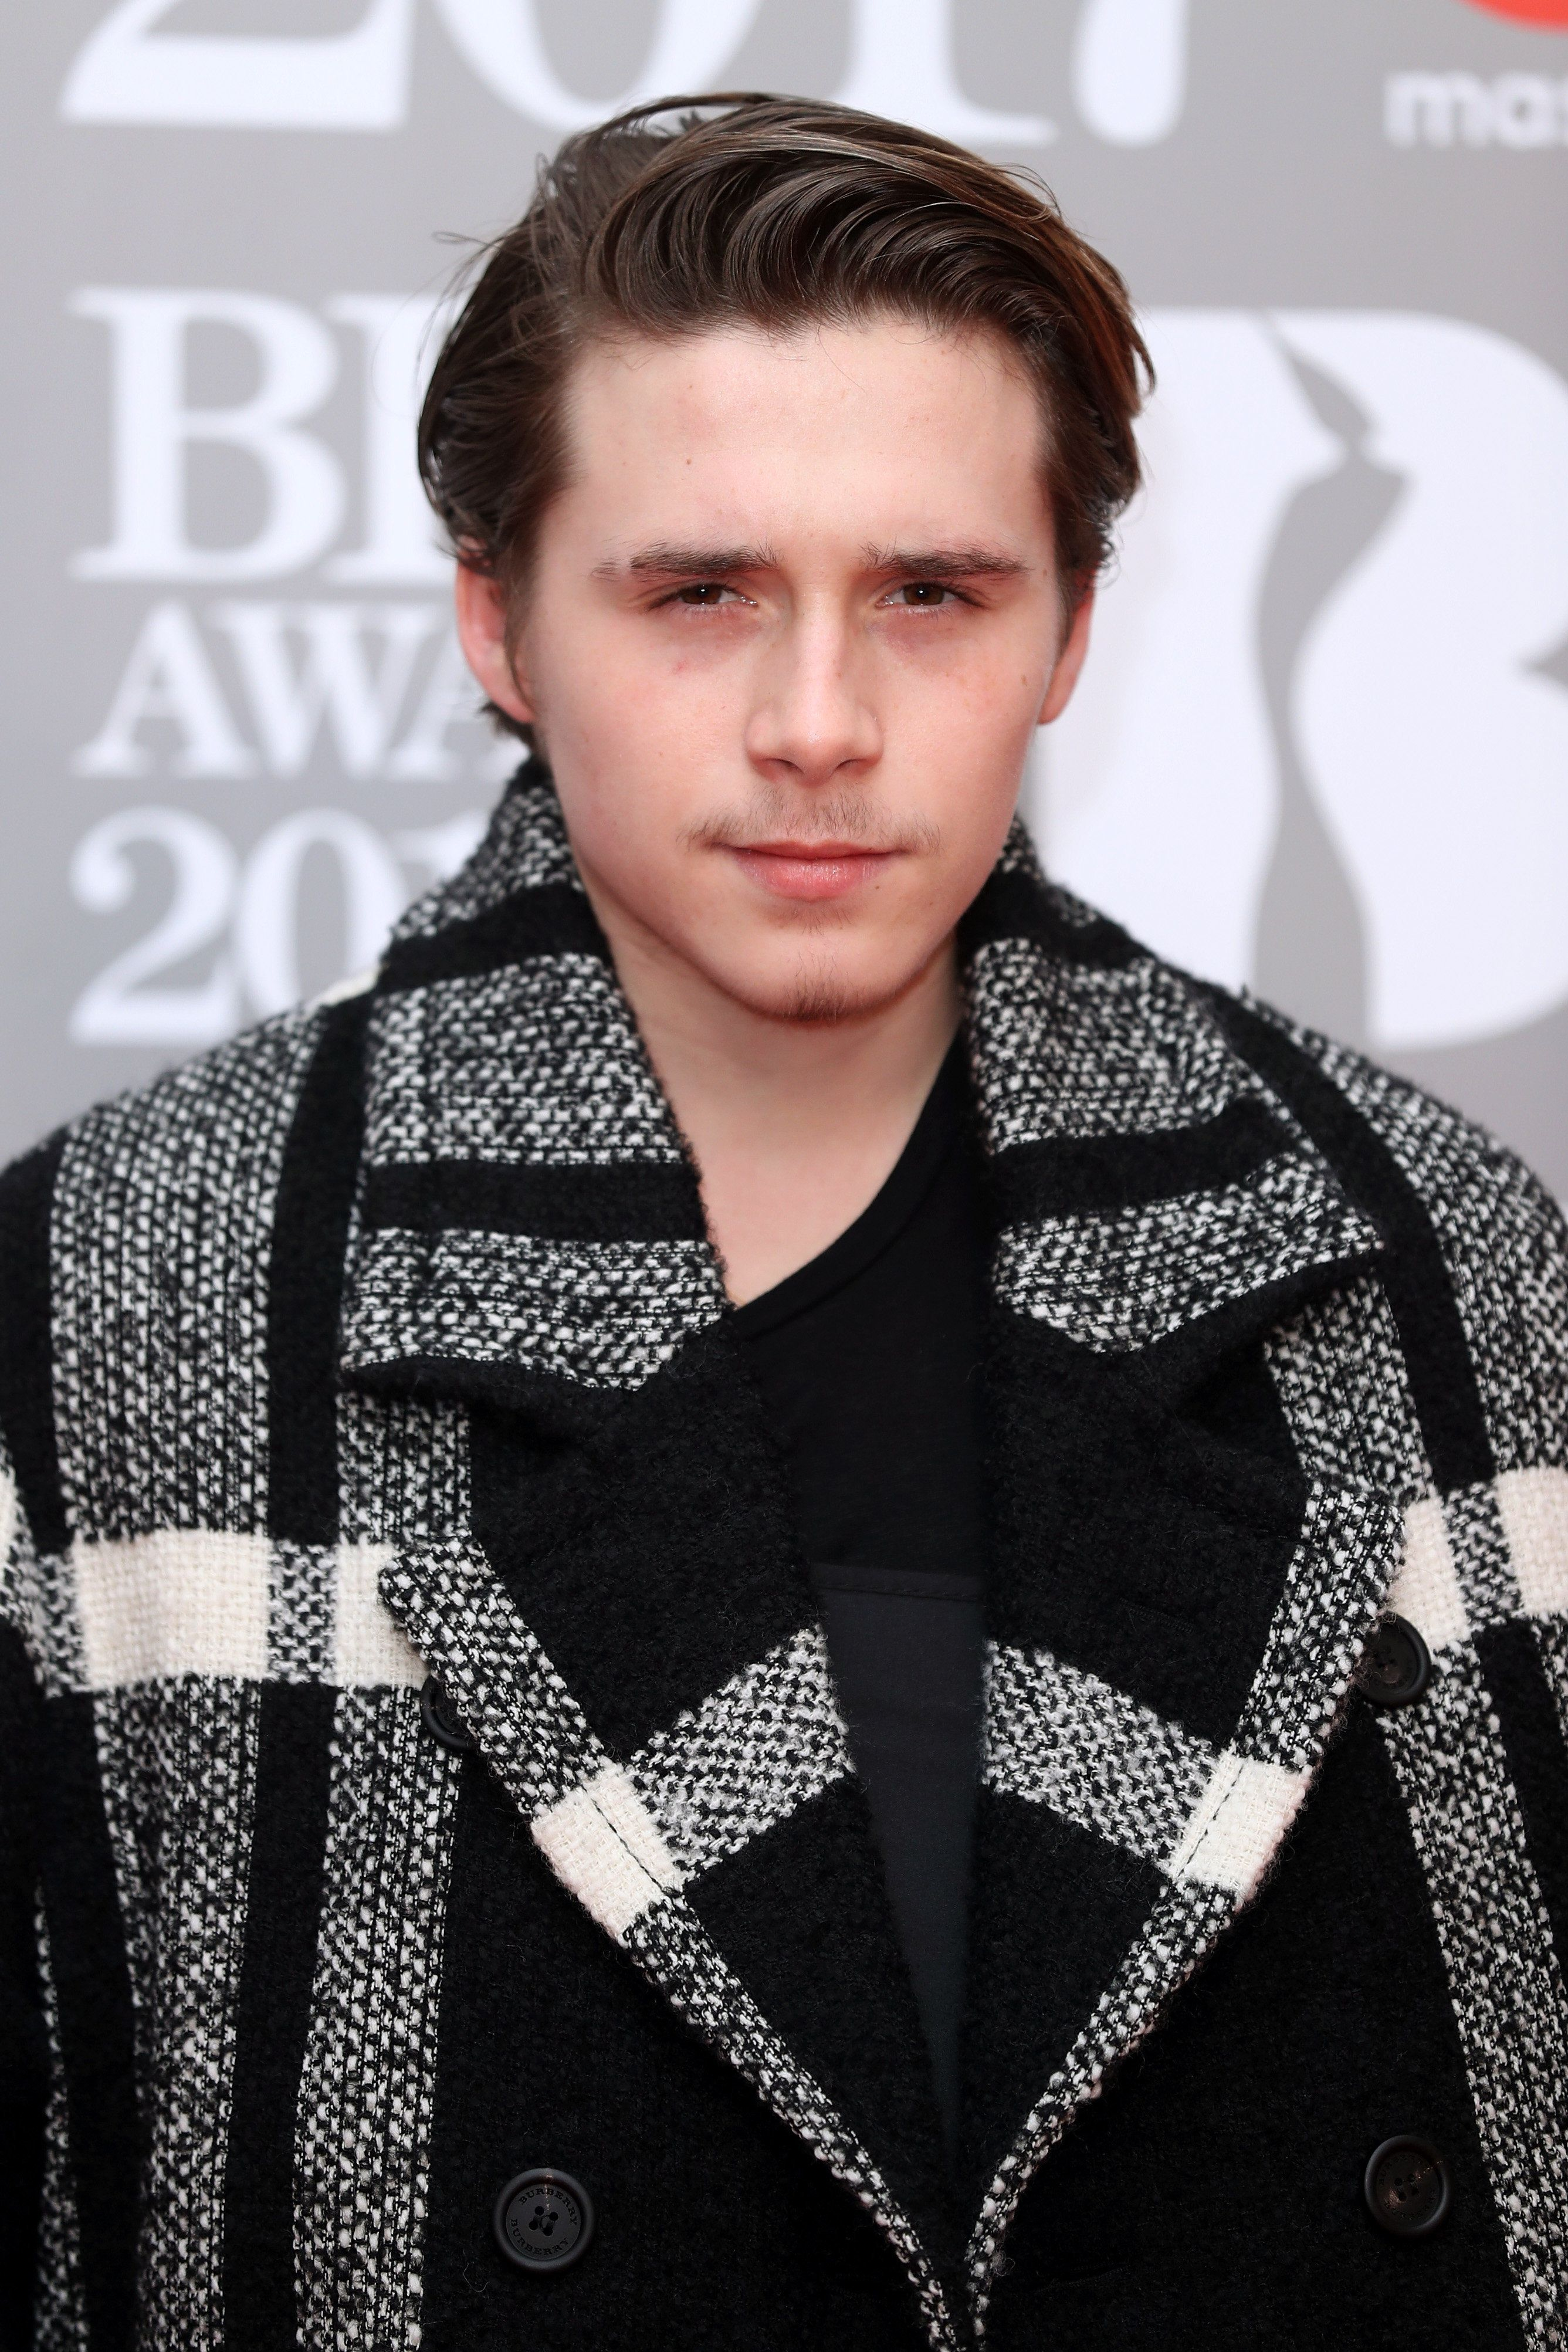 Brooklyn Beckham Hid His Snowboarding Injury Under A Burberry Coat At The Brit